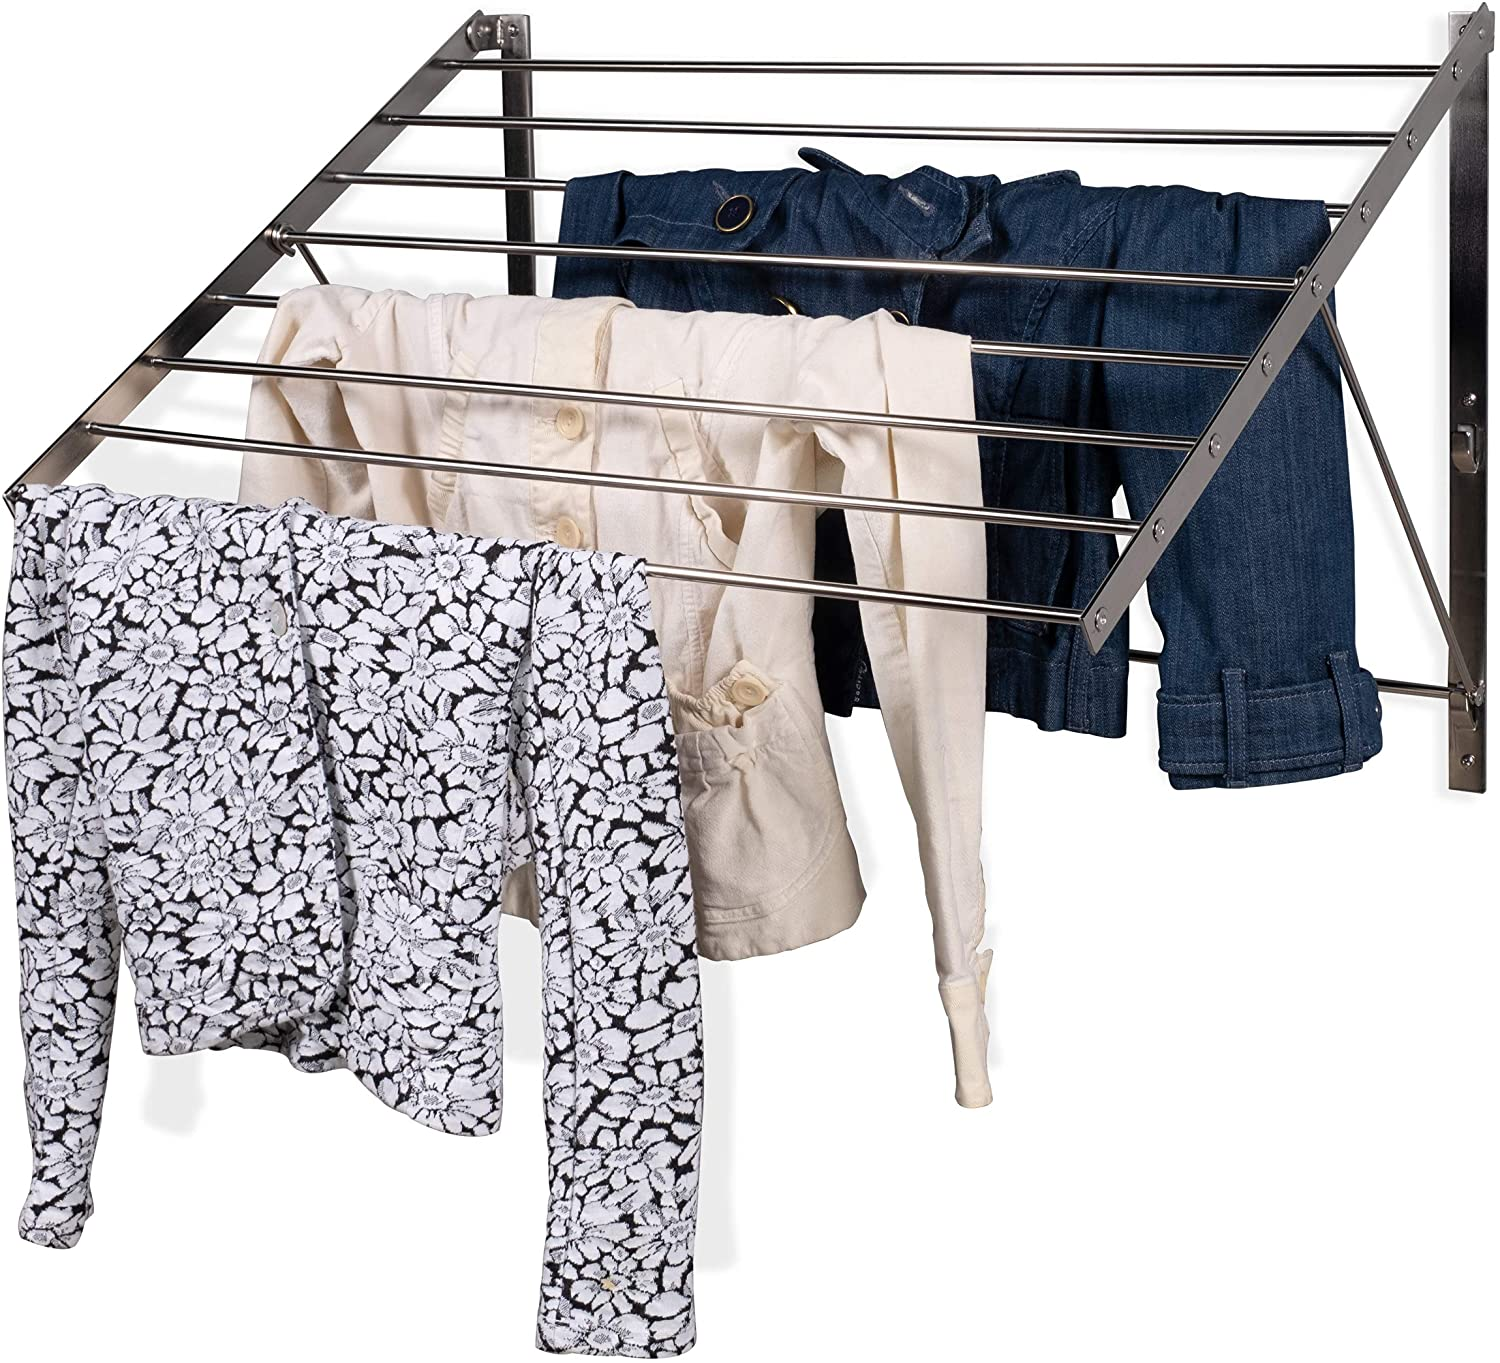 brightmaison Clothes Laundry Drying Rack Stainless Steel